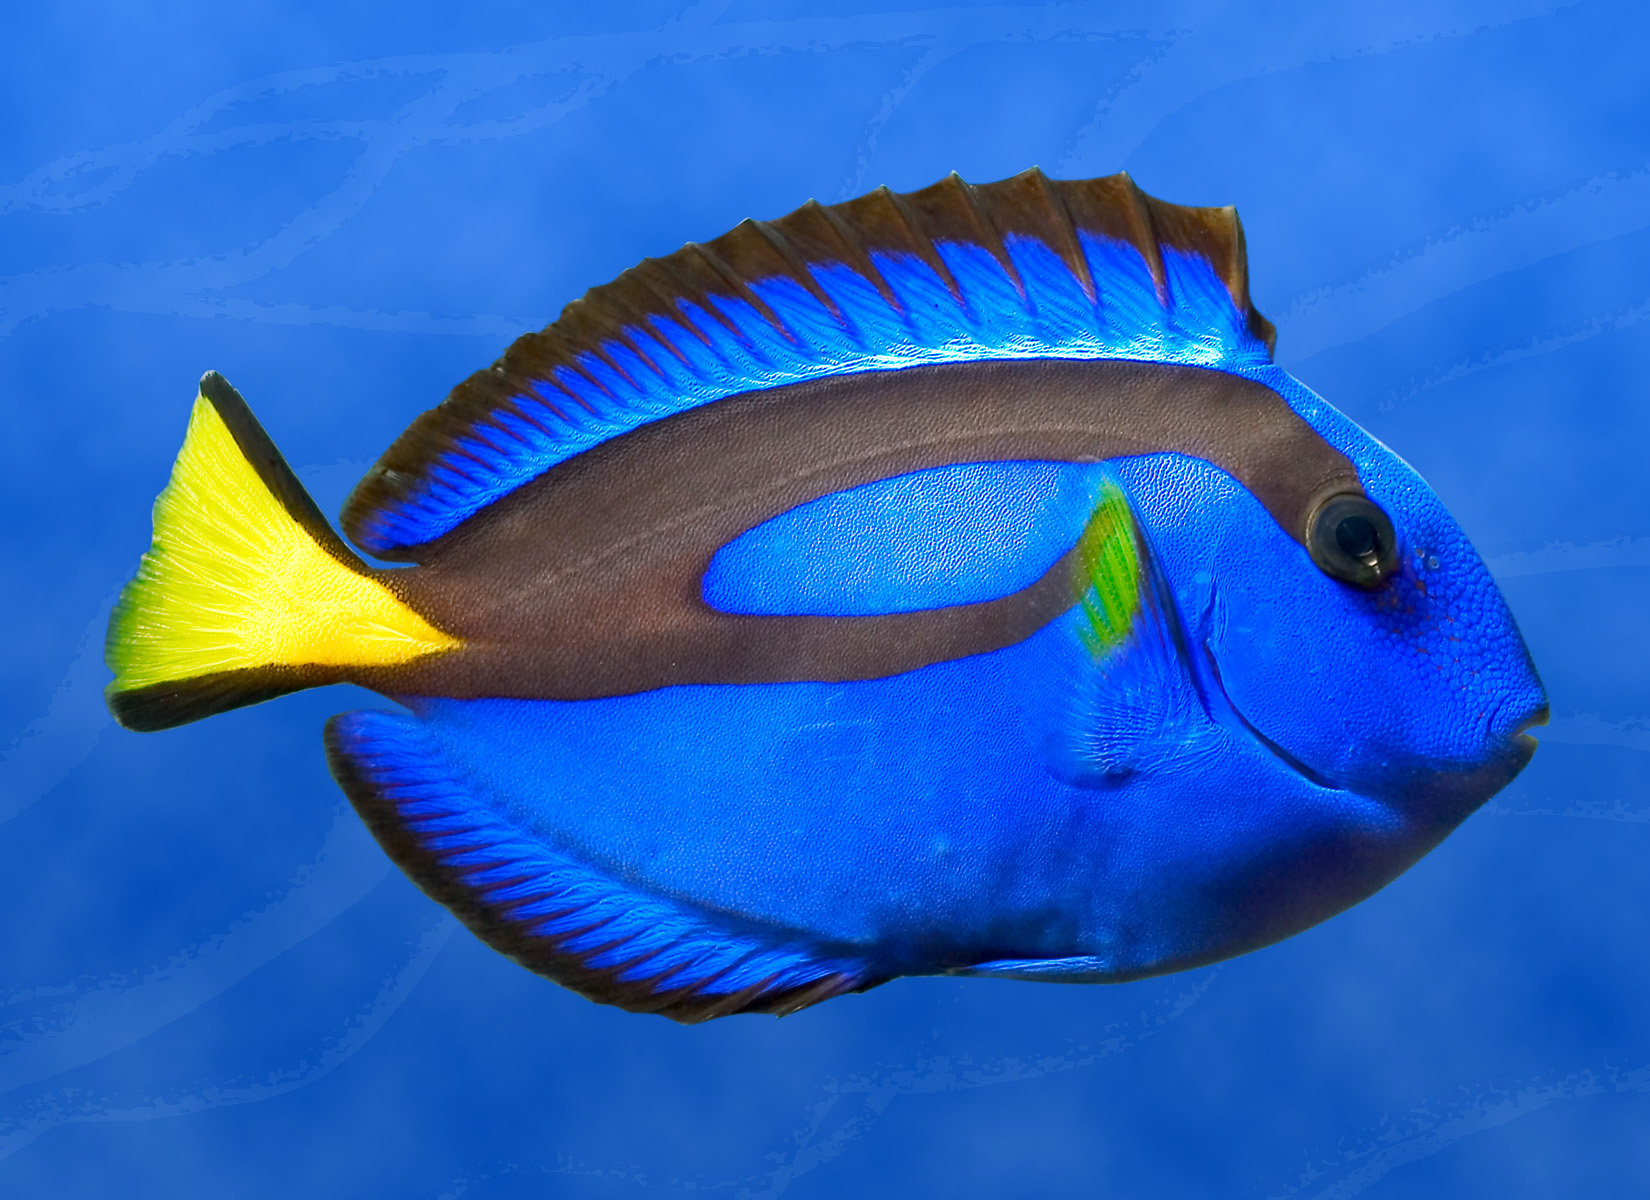 Pin blue tang fish on pinterest for Blue clown fish